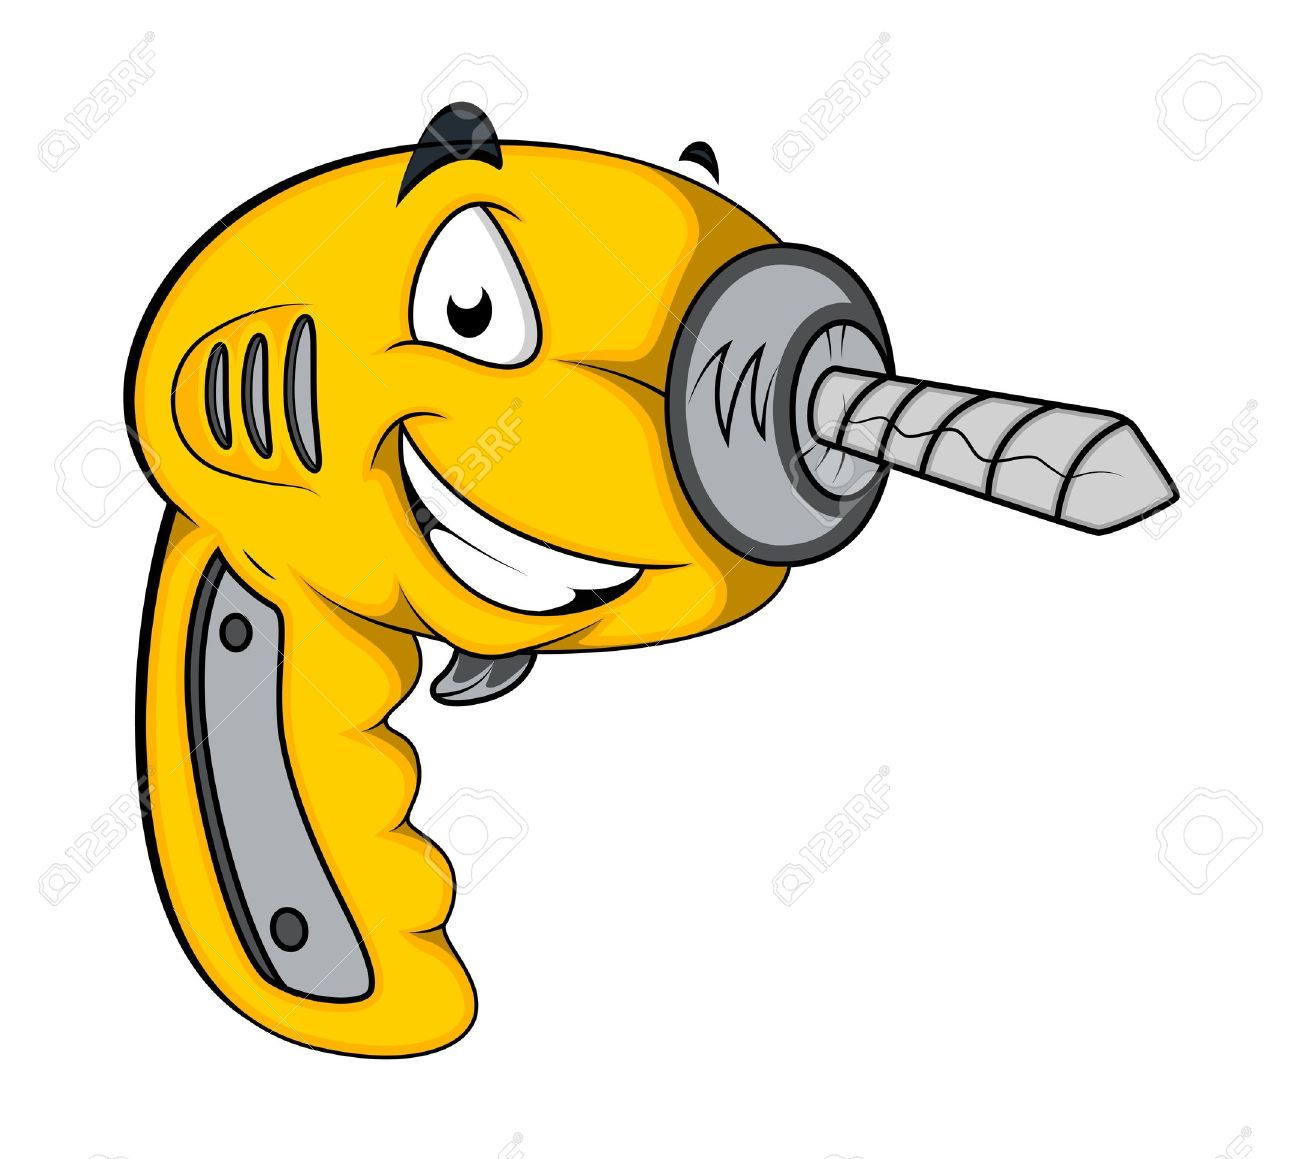 Drill Machine Mascot Vector Royalty Free Cliparts, Vectors, And.